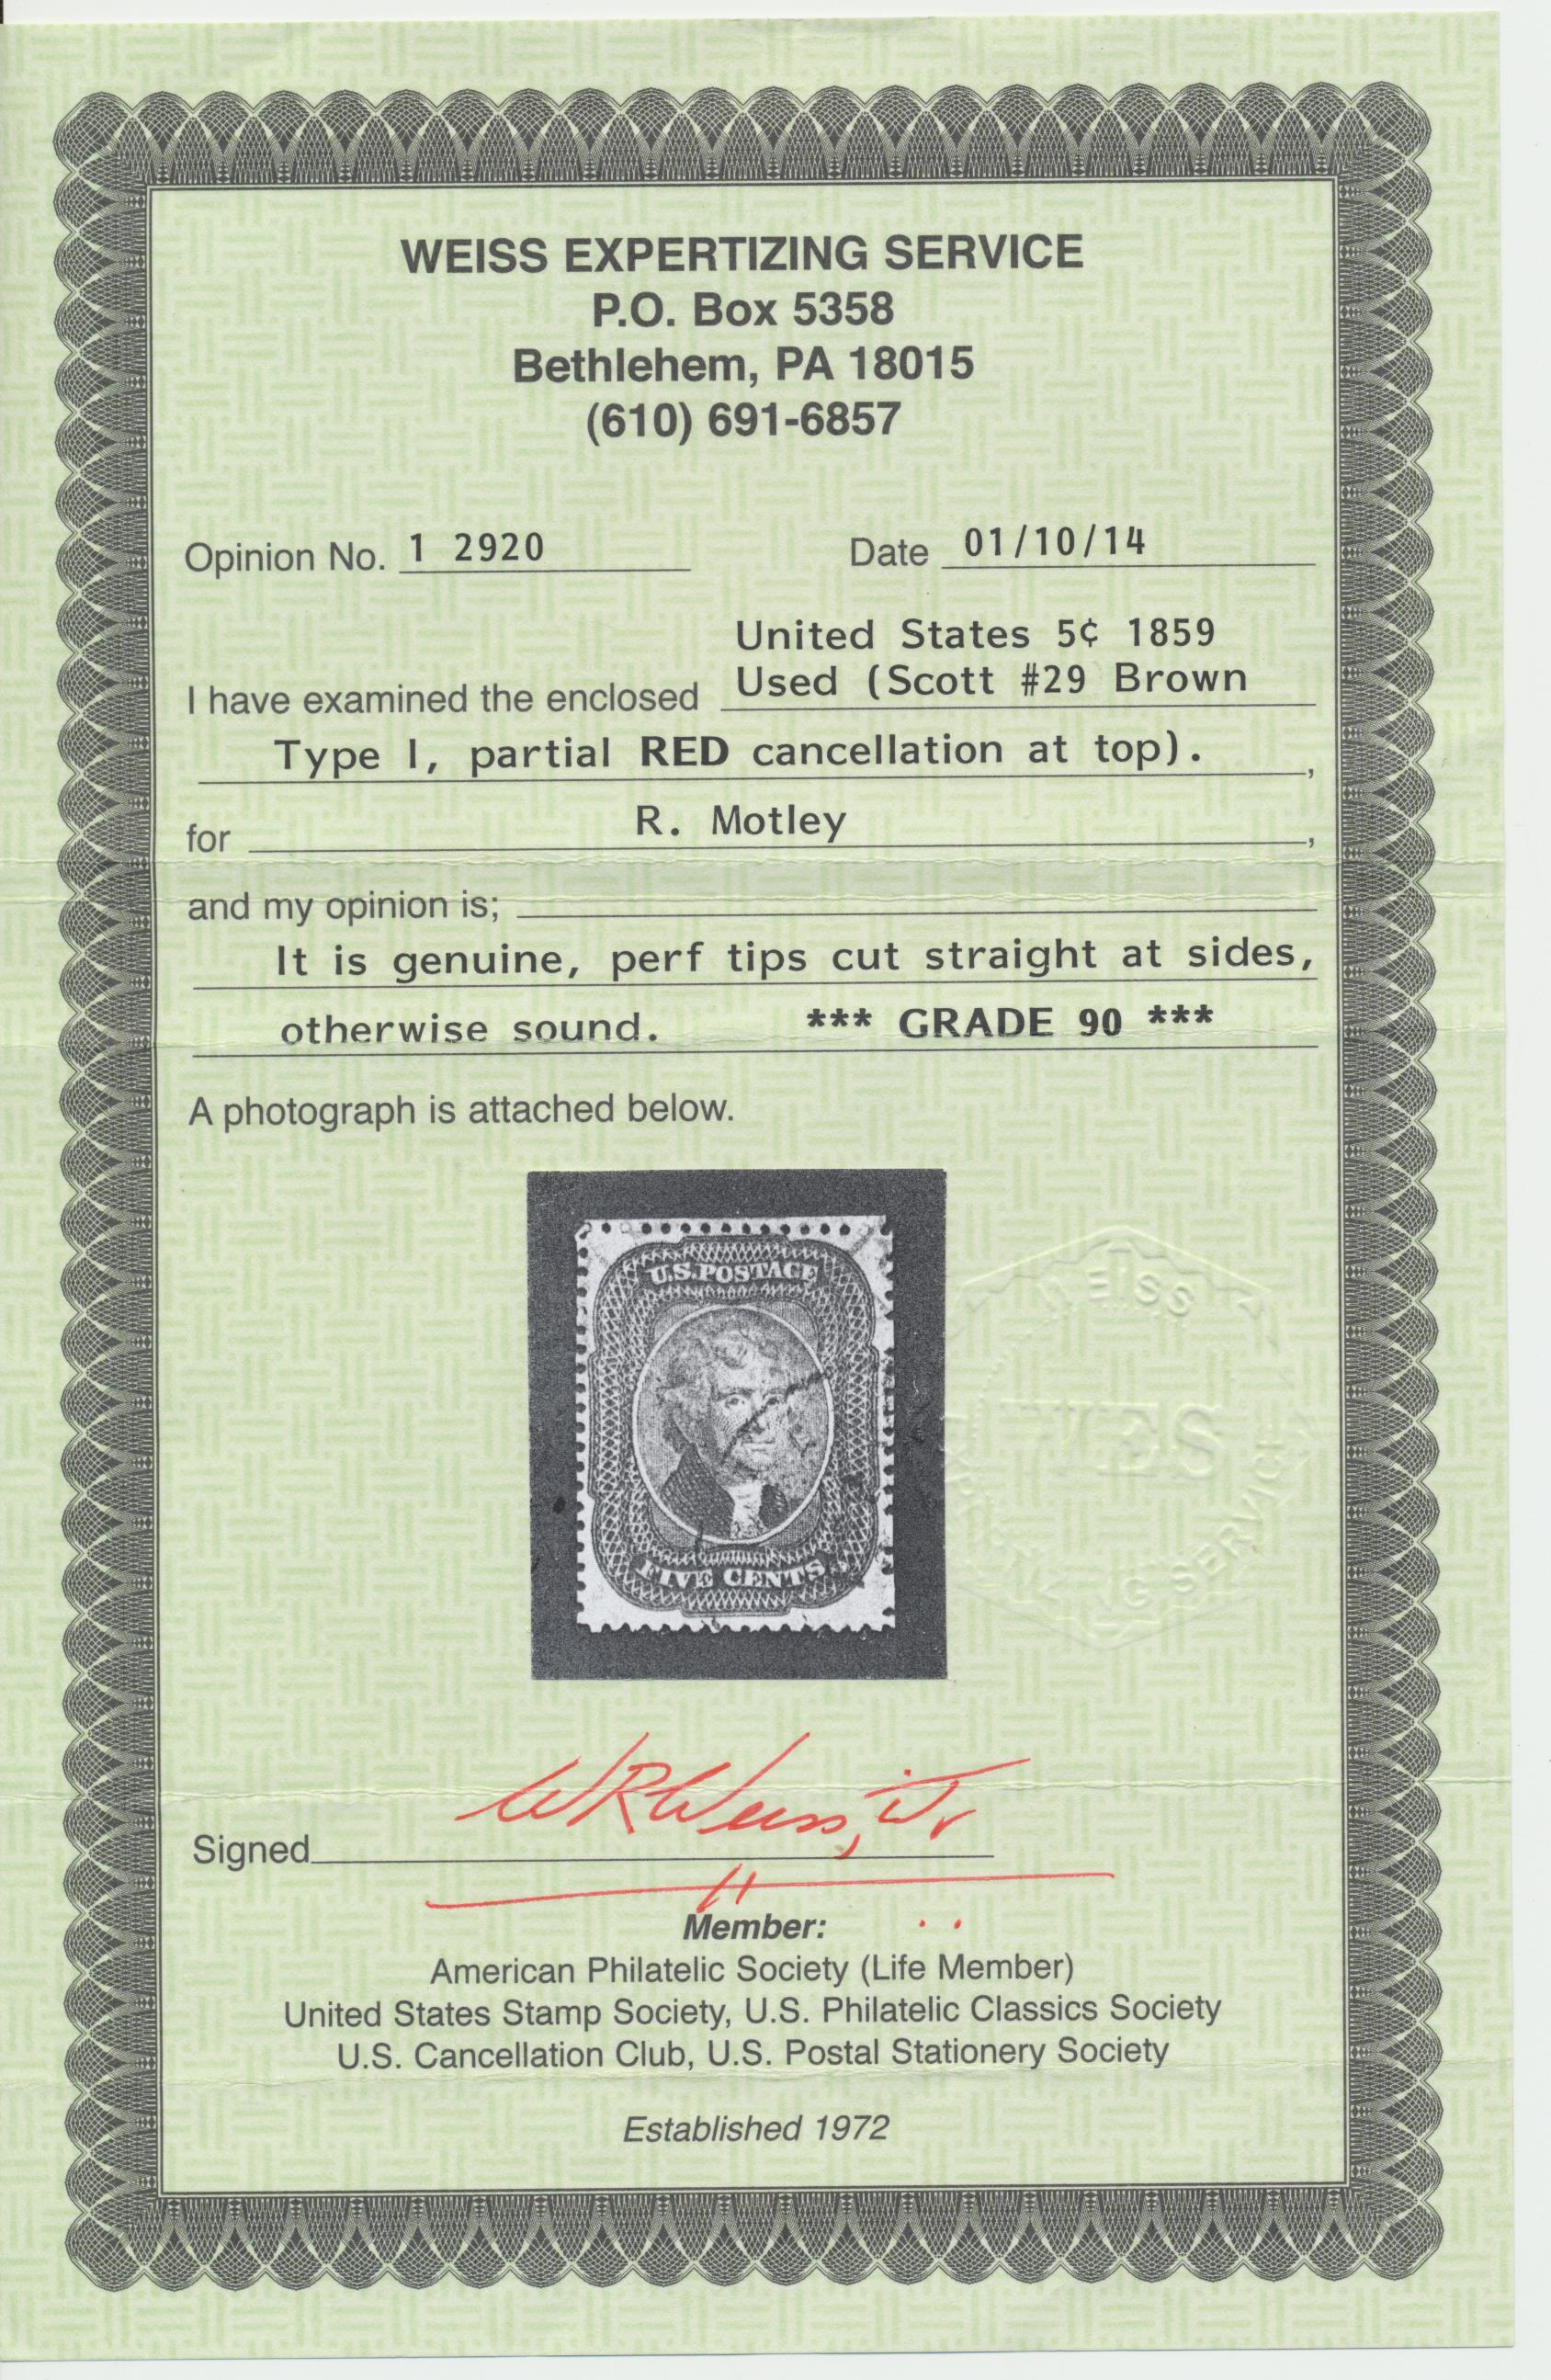 29 used 1859 5Â brown type i with 2014 weiss graded 90 certificate